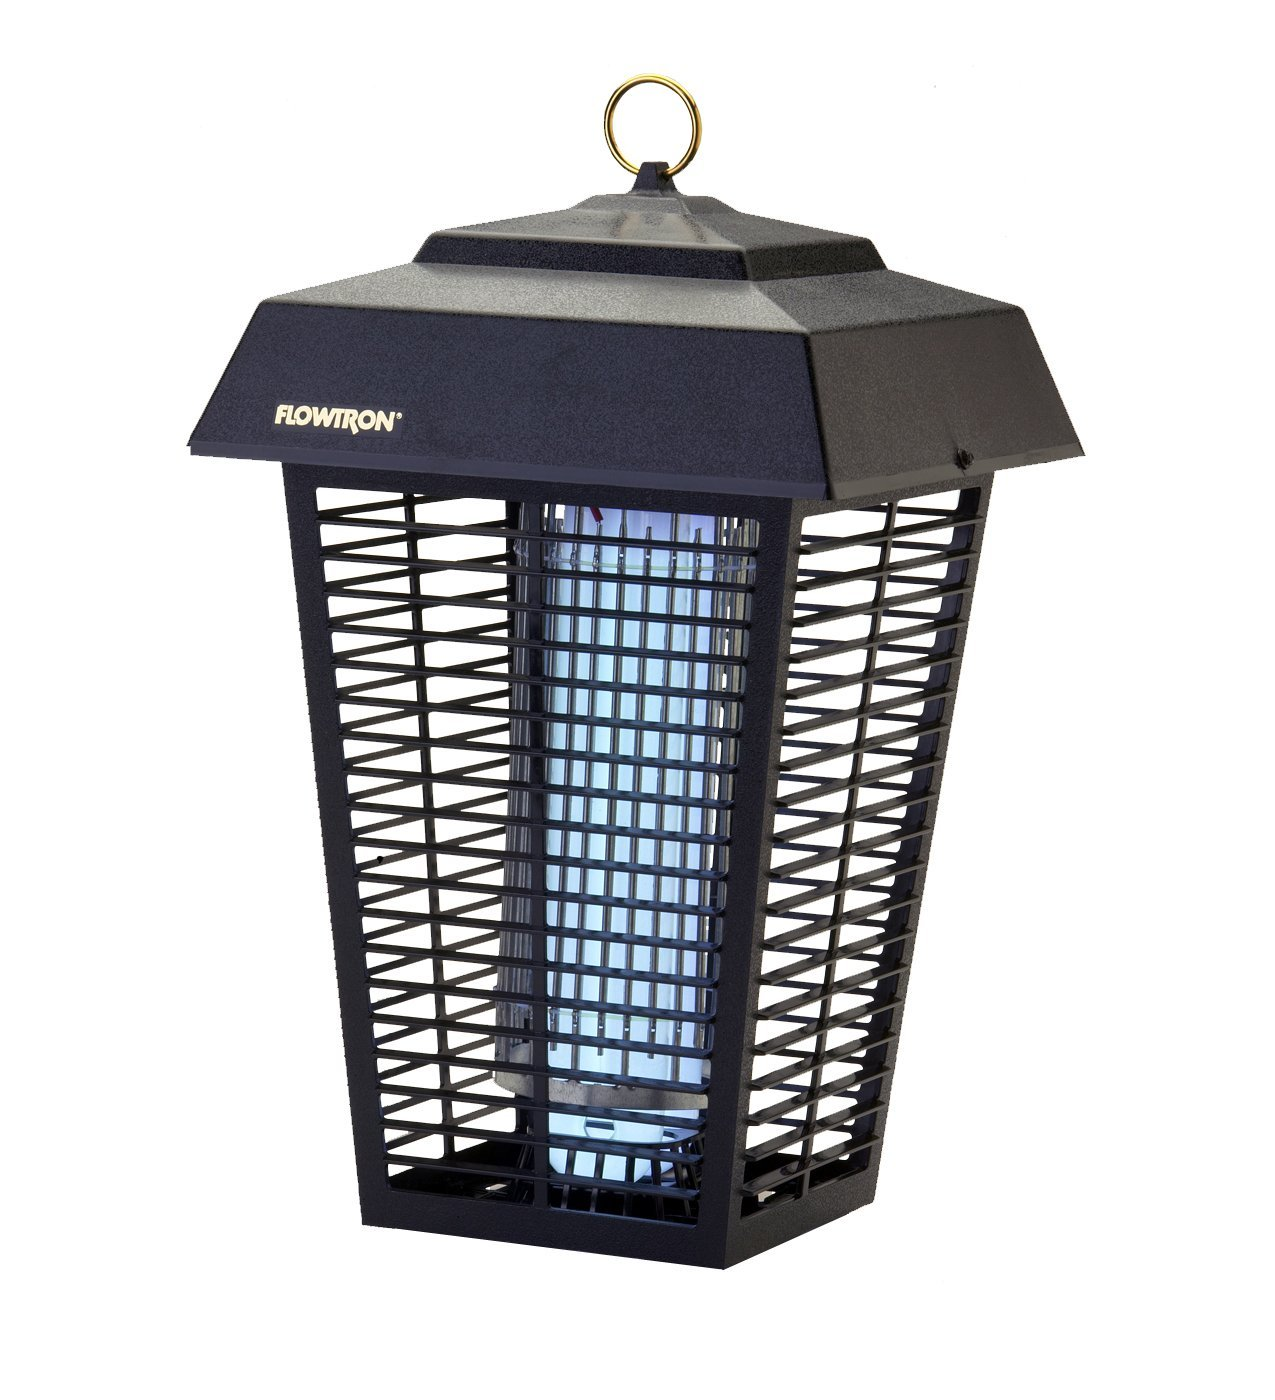 Flowtron 80-Watt Electronic Insect Killer, 1-1/2 Acre Coverage, Easy bulb replacement